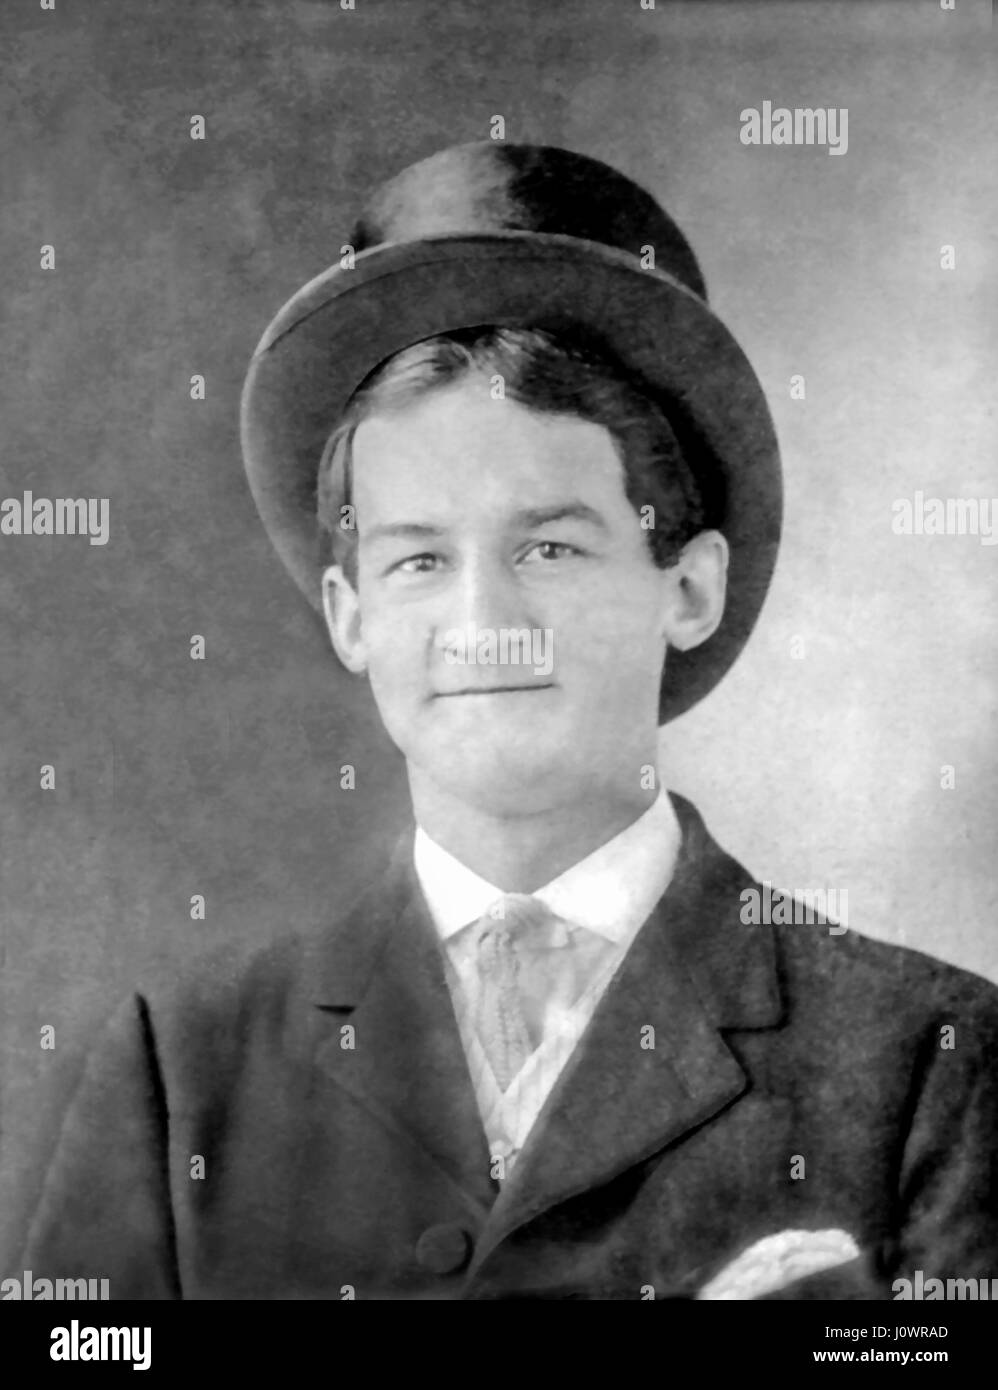 Vintage b&w portrait of a young man about eighteen-years old wearing a Victorian beaver top hat around 1915. - Stock Image